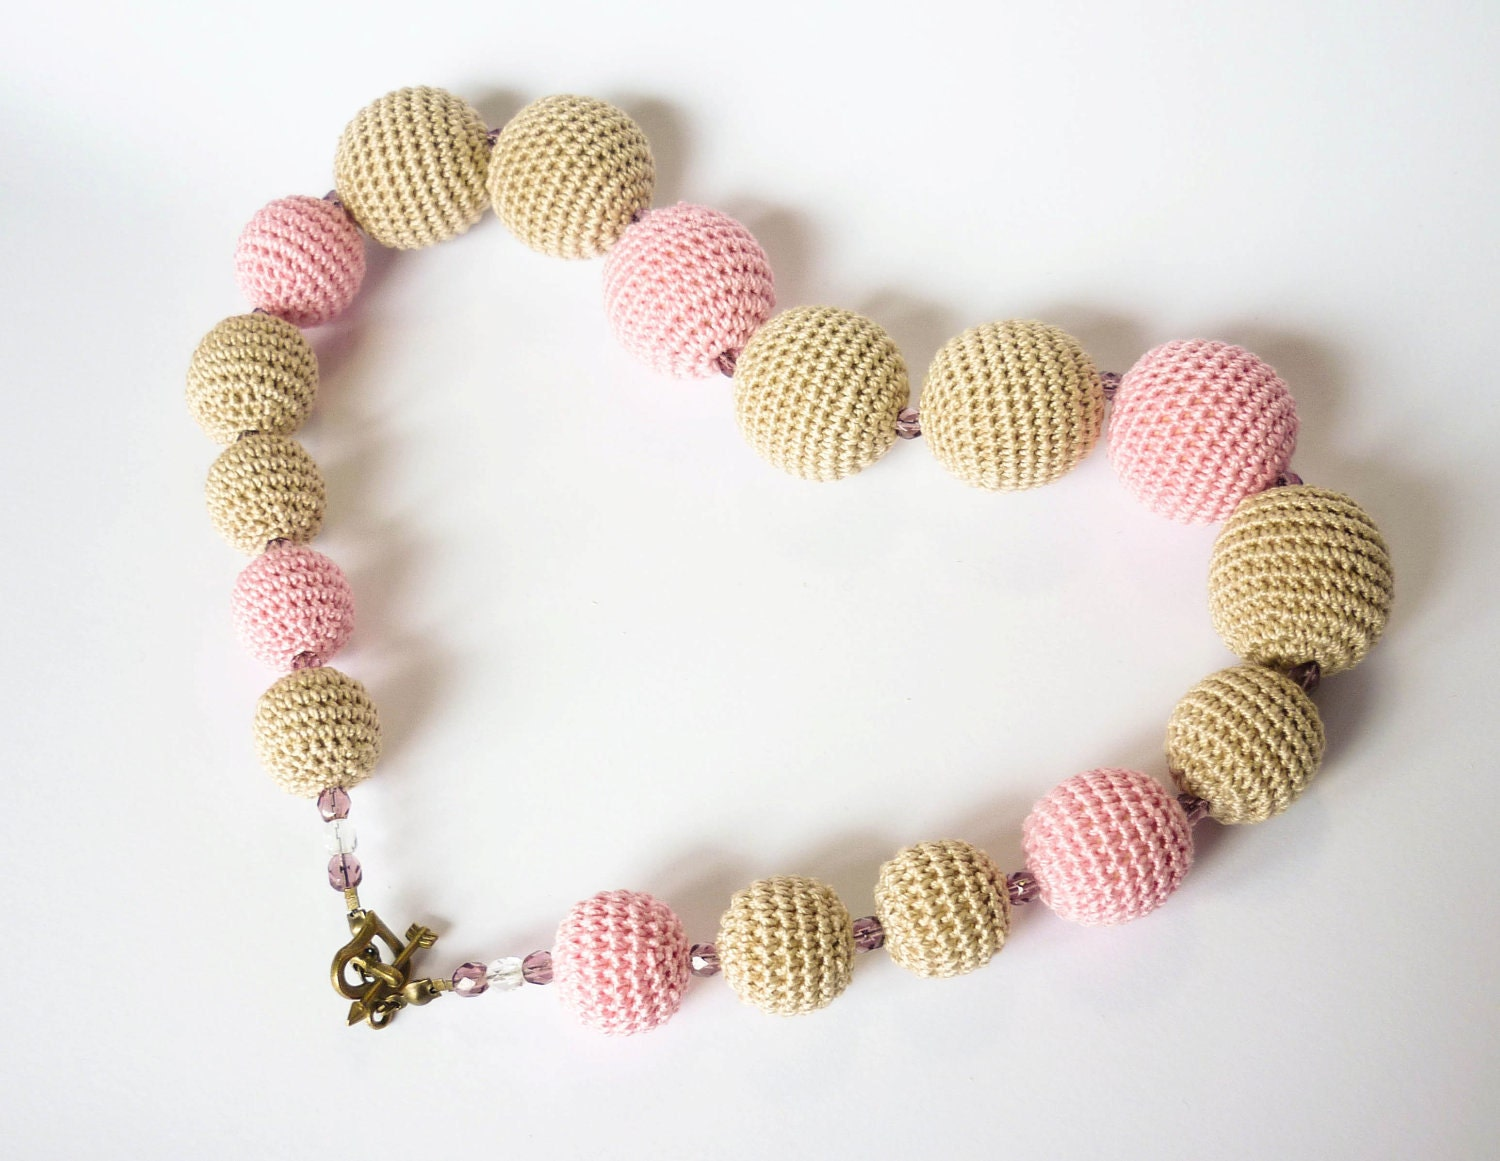 Beige and Pink crochet necklace - Crochet beads necklace - Beige and Pink - For Mom - Under 50 - JanesBeautyStore